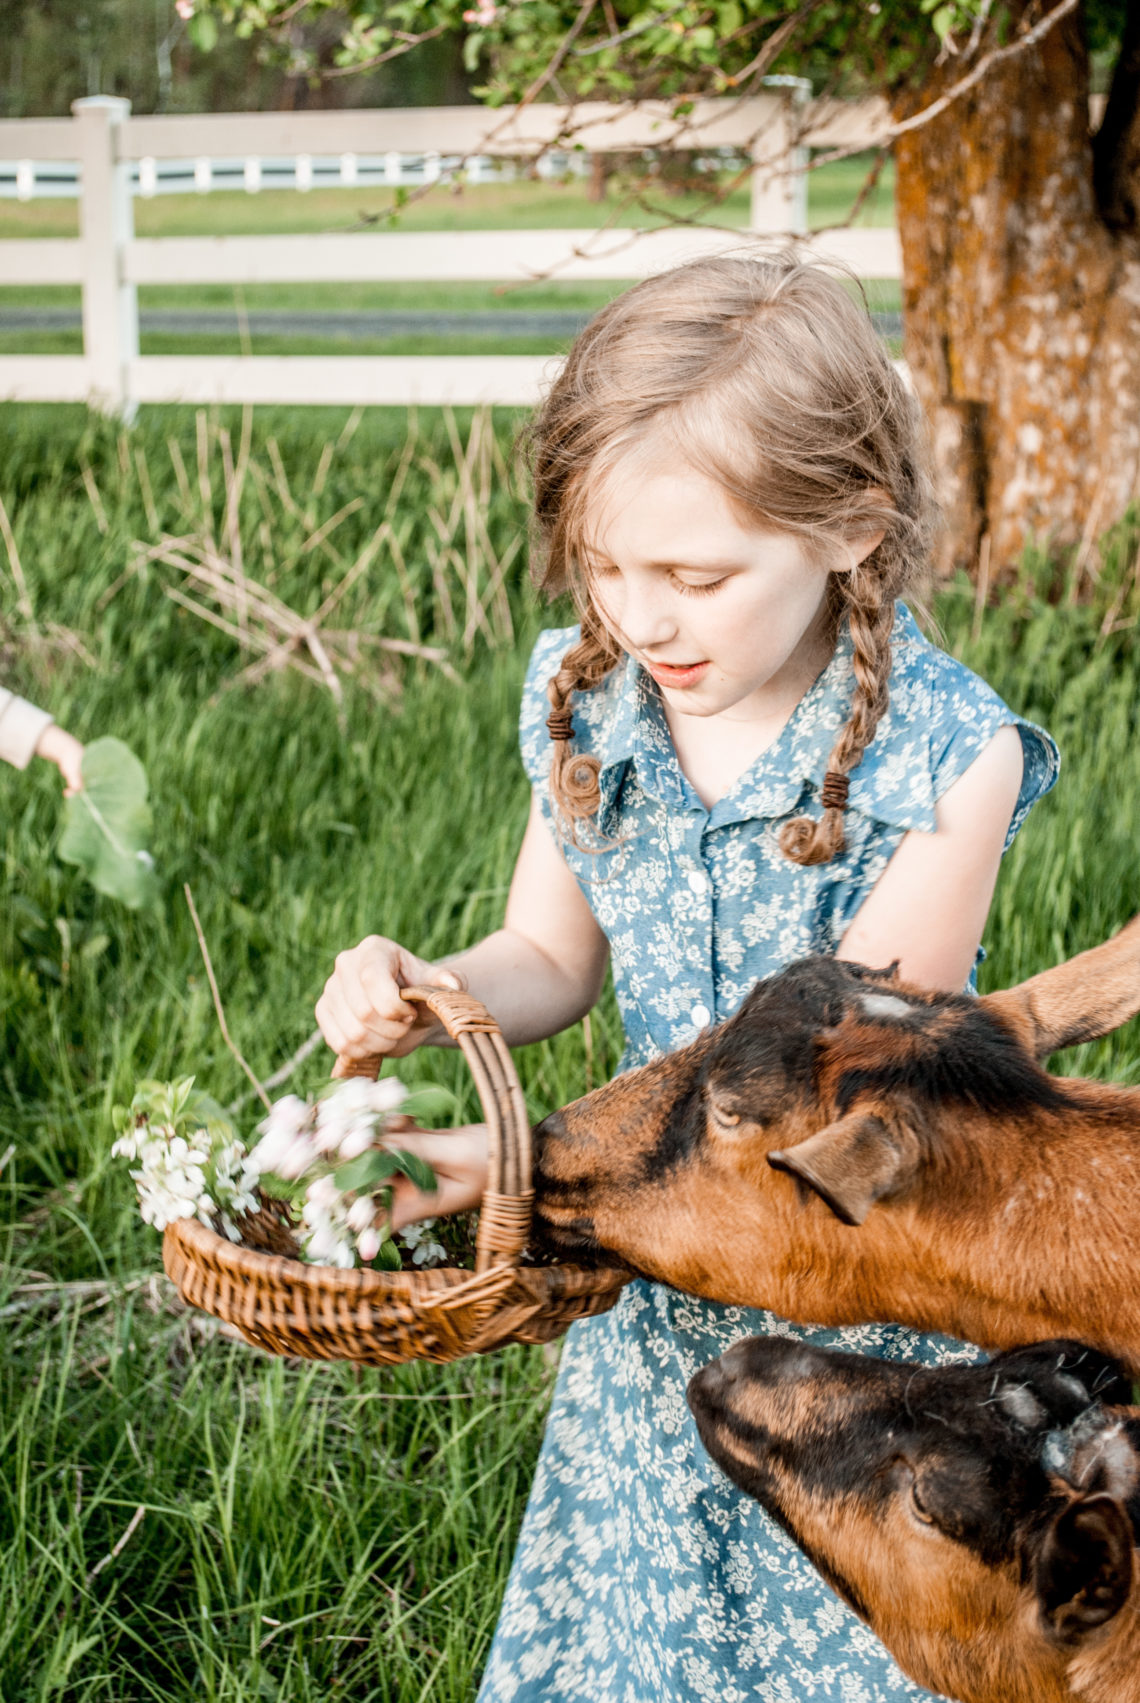 Why every homestead should include some friendly goats!